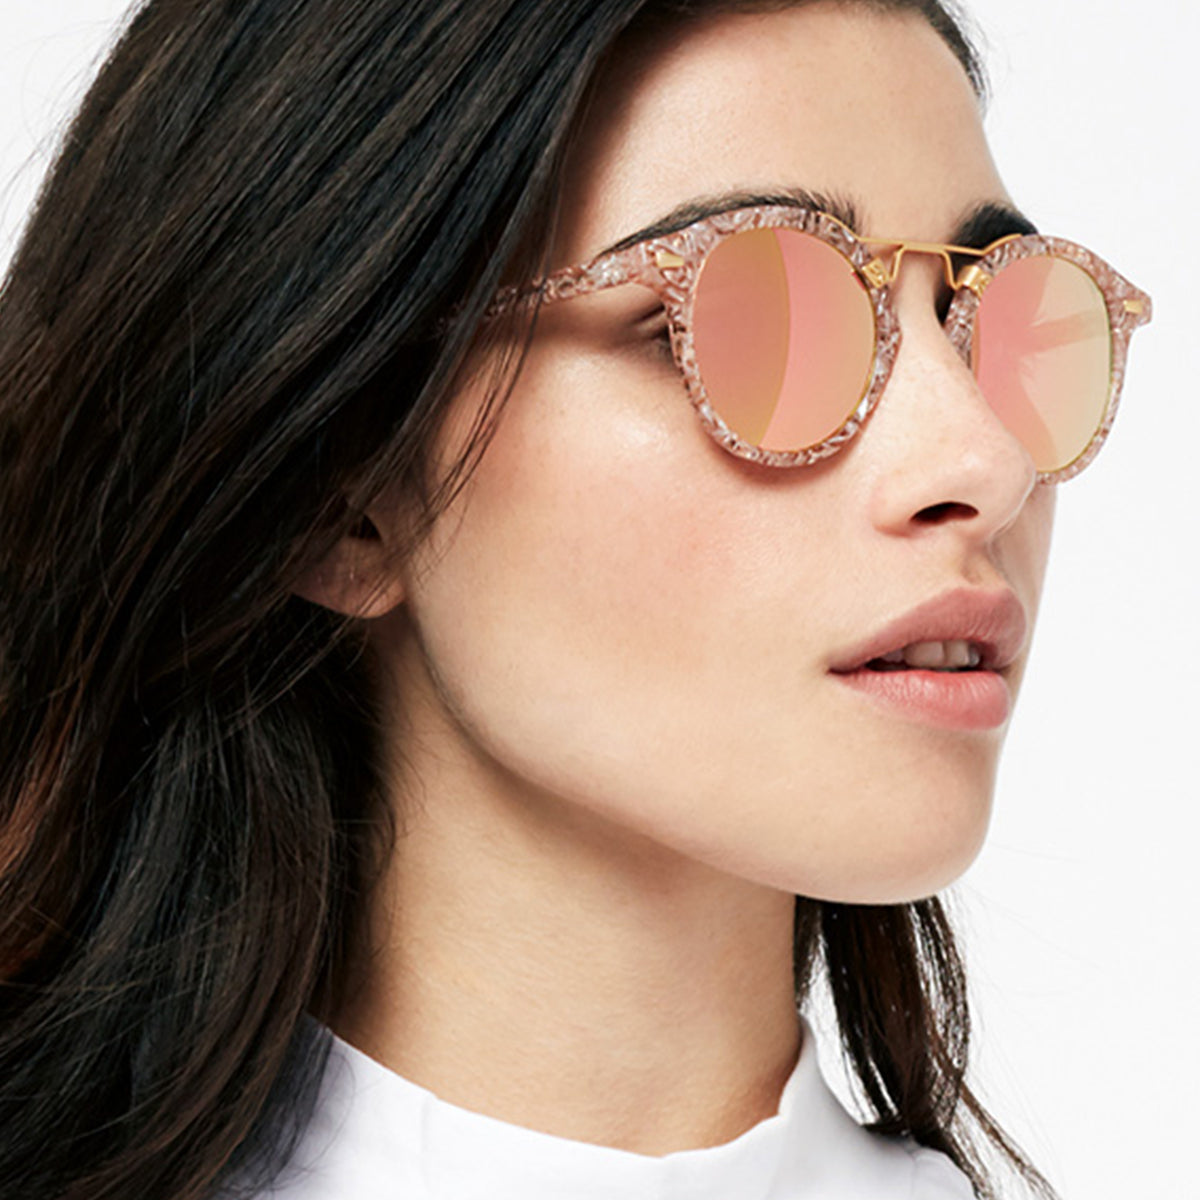 ST. LOUIS MIRRORED | Camellia 24K handcrafted acetate Sunglasses | Womens | Featured Model